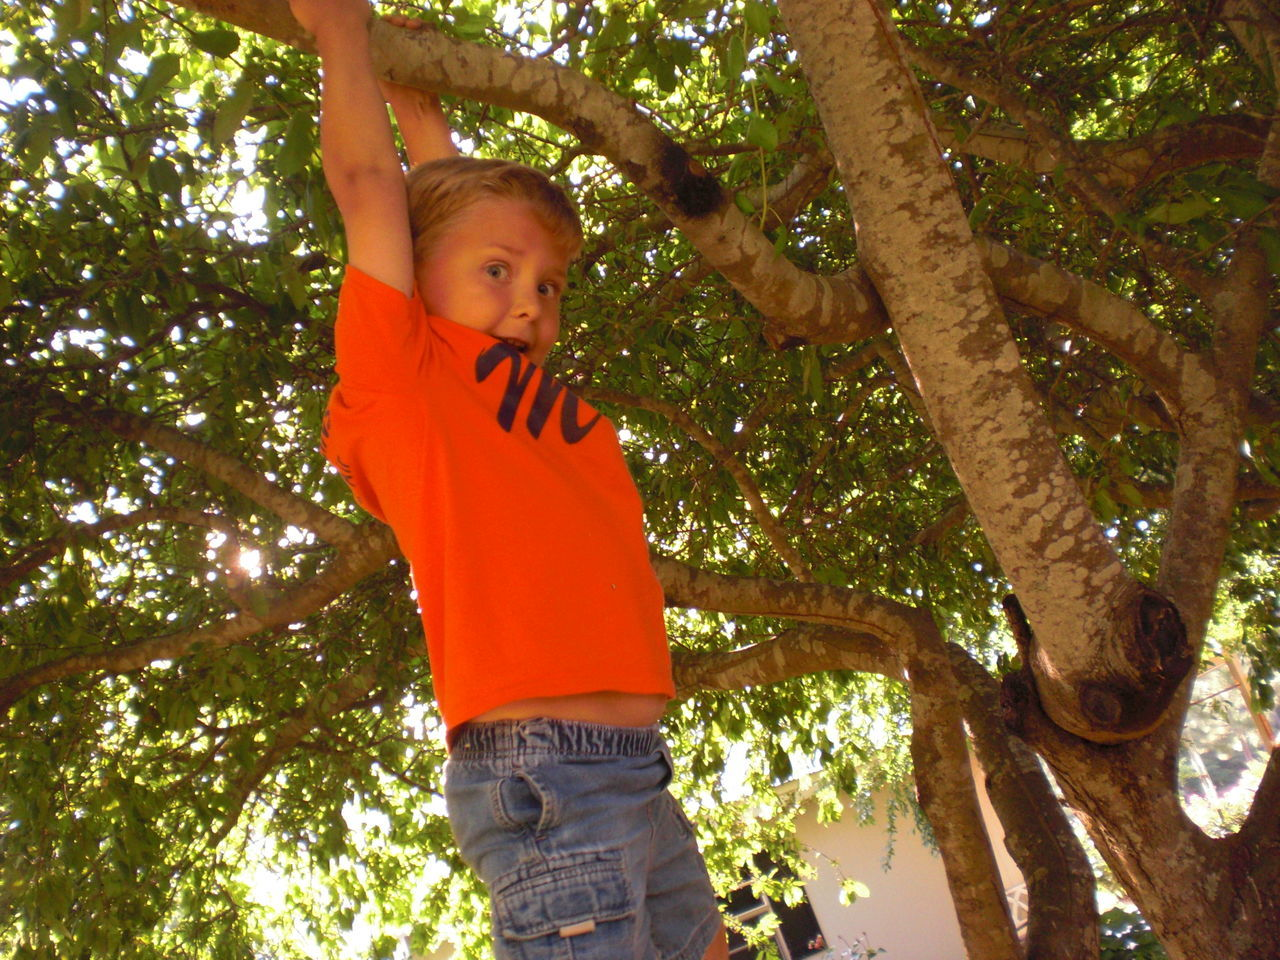 tree, casual clothing, one person, childhood, boys, three quarter length, standing, looking at camera, low angle view, leisure activity, t-shirt, day, lifestyles, elementary age, one boy only, growth, outdoors, portrait, real people, branch, climbing, nature, people